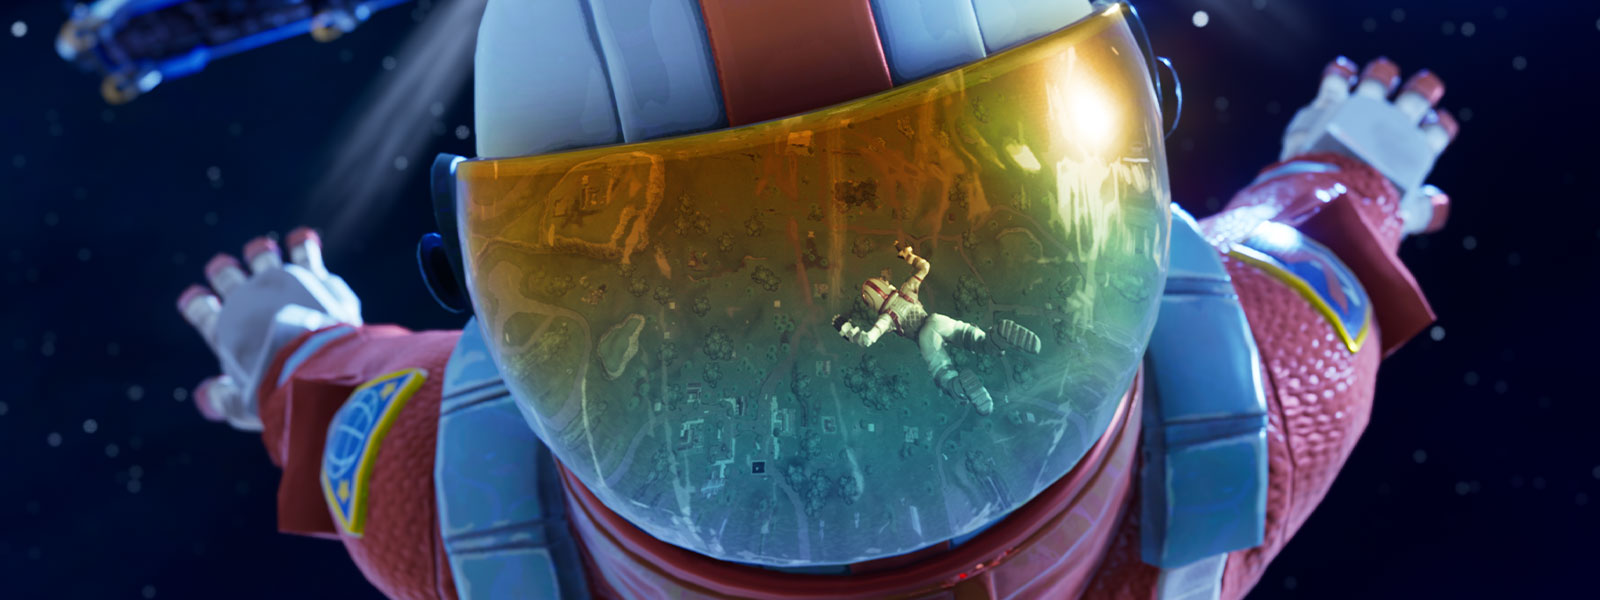 Fortnite characters skydiving in space from the battle bus